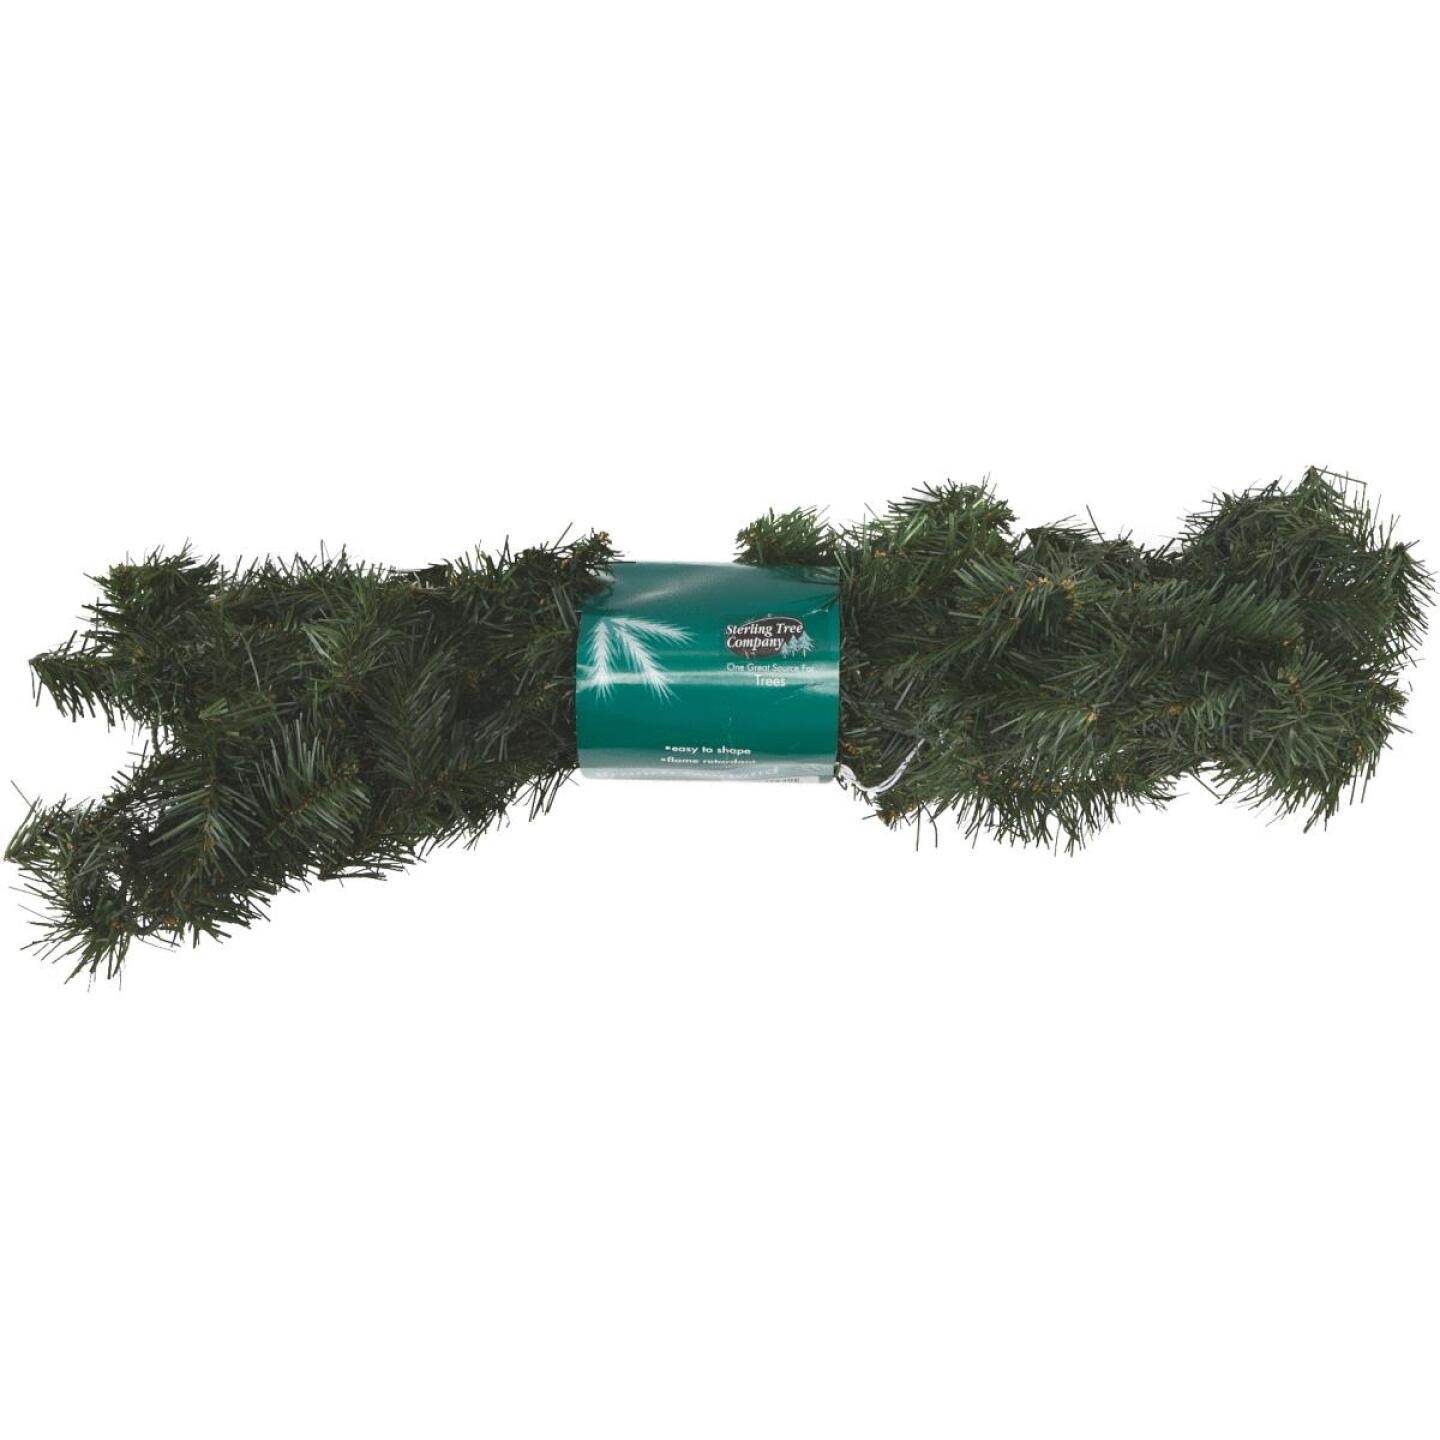 Gerson 9 Ft. Canadian Pine Garland Image 4